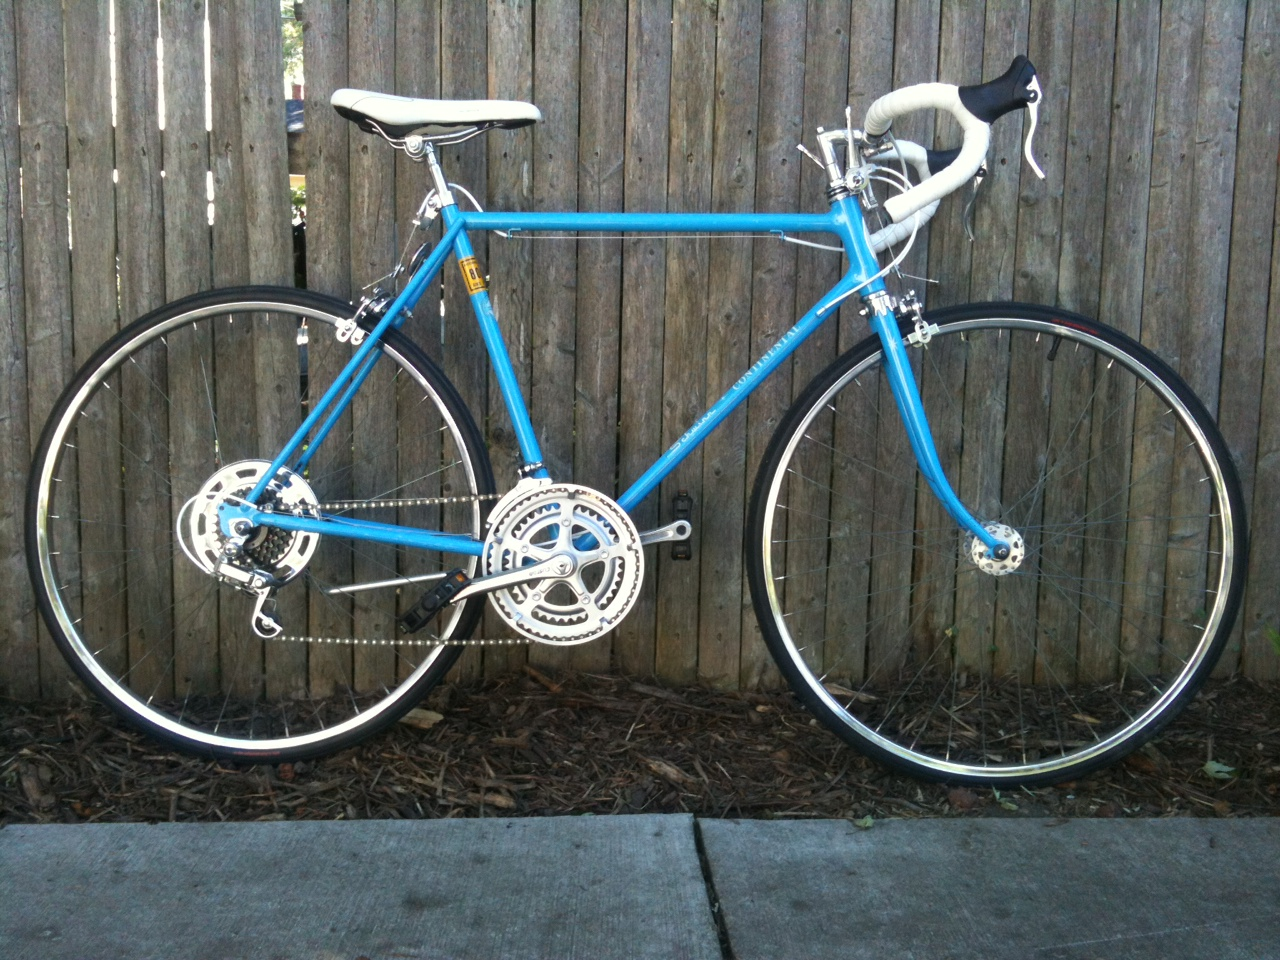 Chicagoland S Bicycles Amp Their Riders Dave S Baby Blue